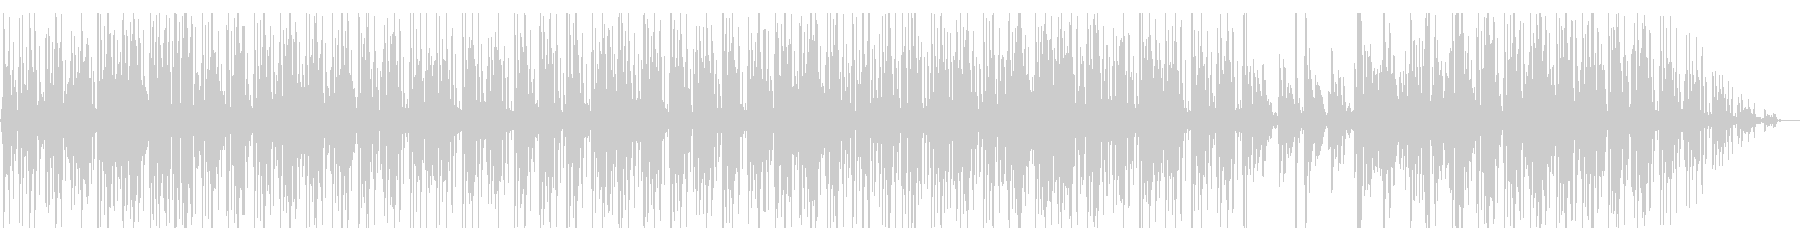 Fashionable and cool piano jazz's unreproduced waveform